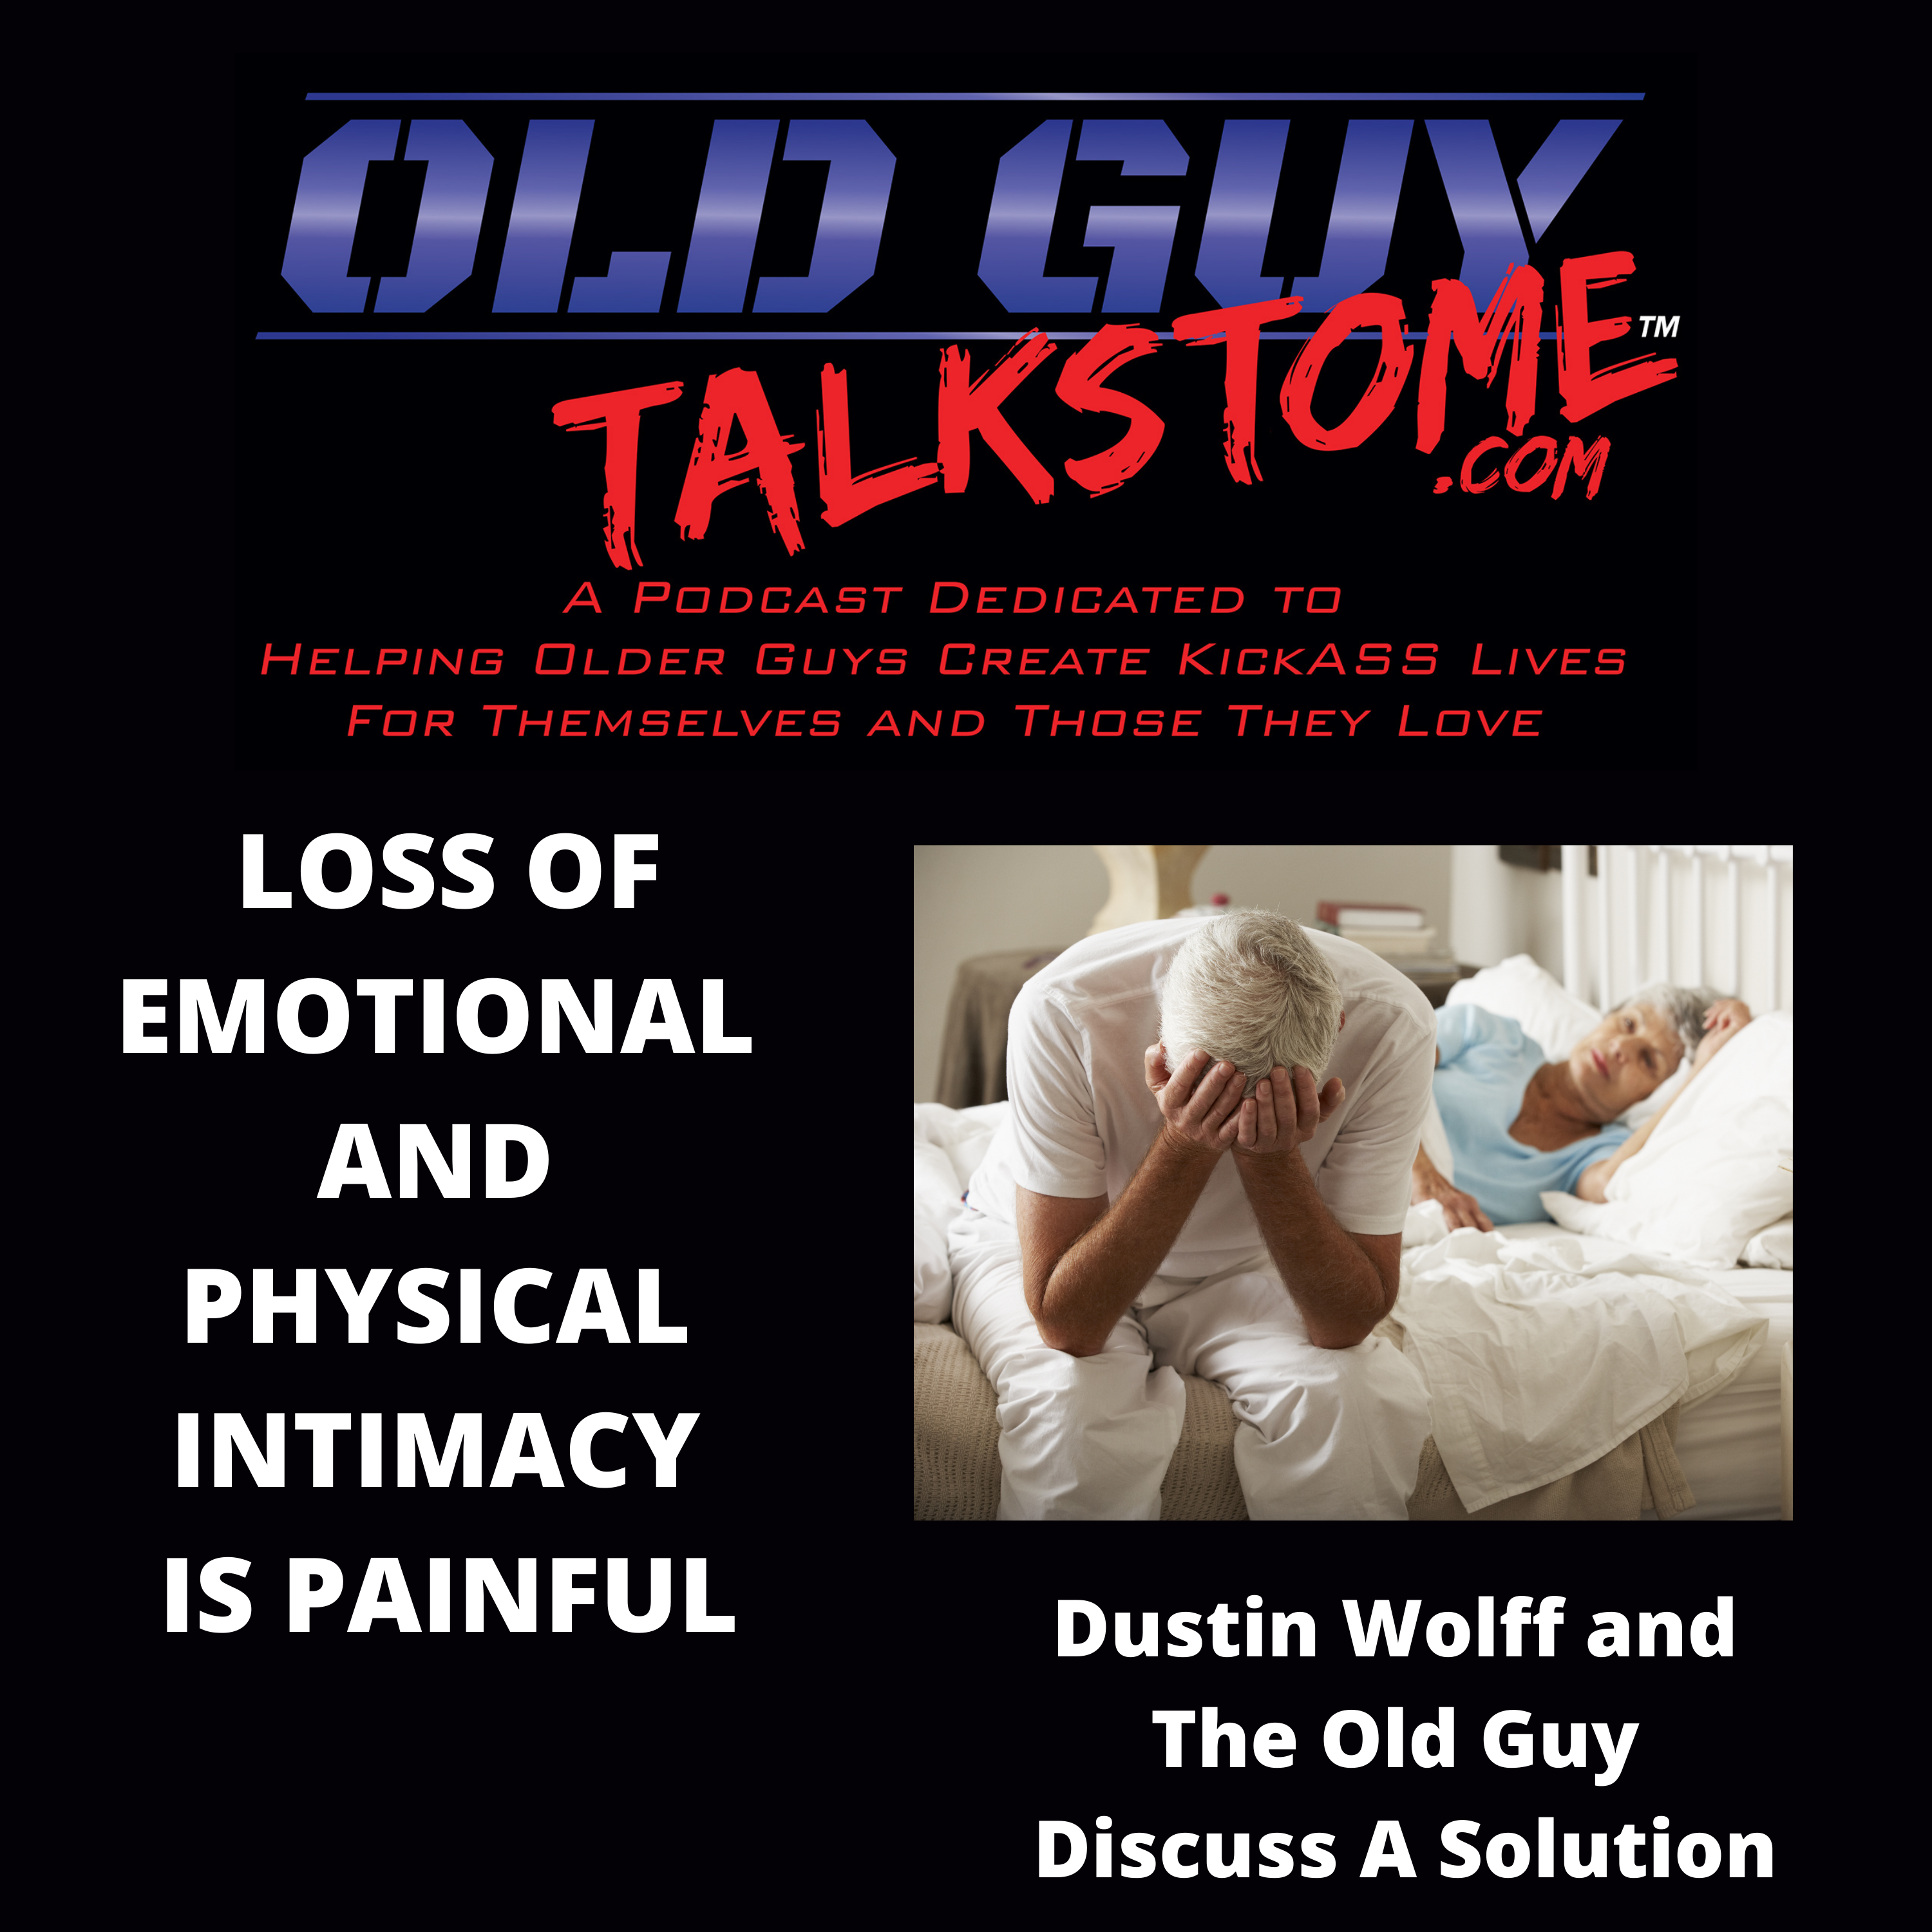 OldGuyTalksToMe - LOSS OF EMOTIONAL AND PHYSICAL INTIMACY IS PAINFUL